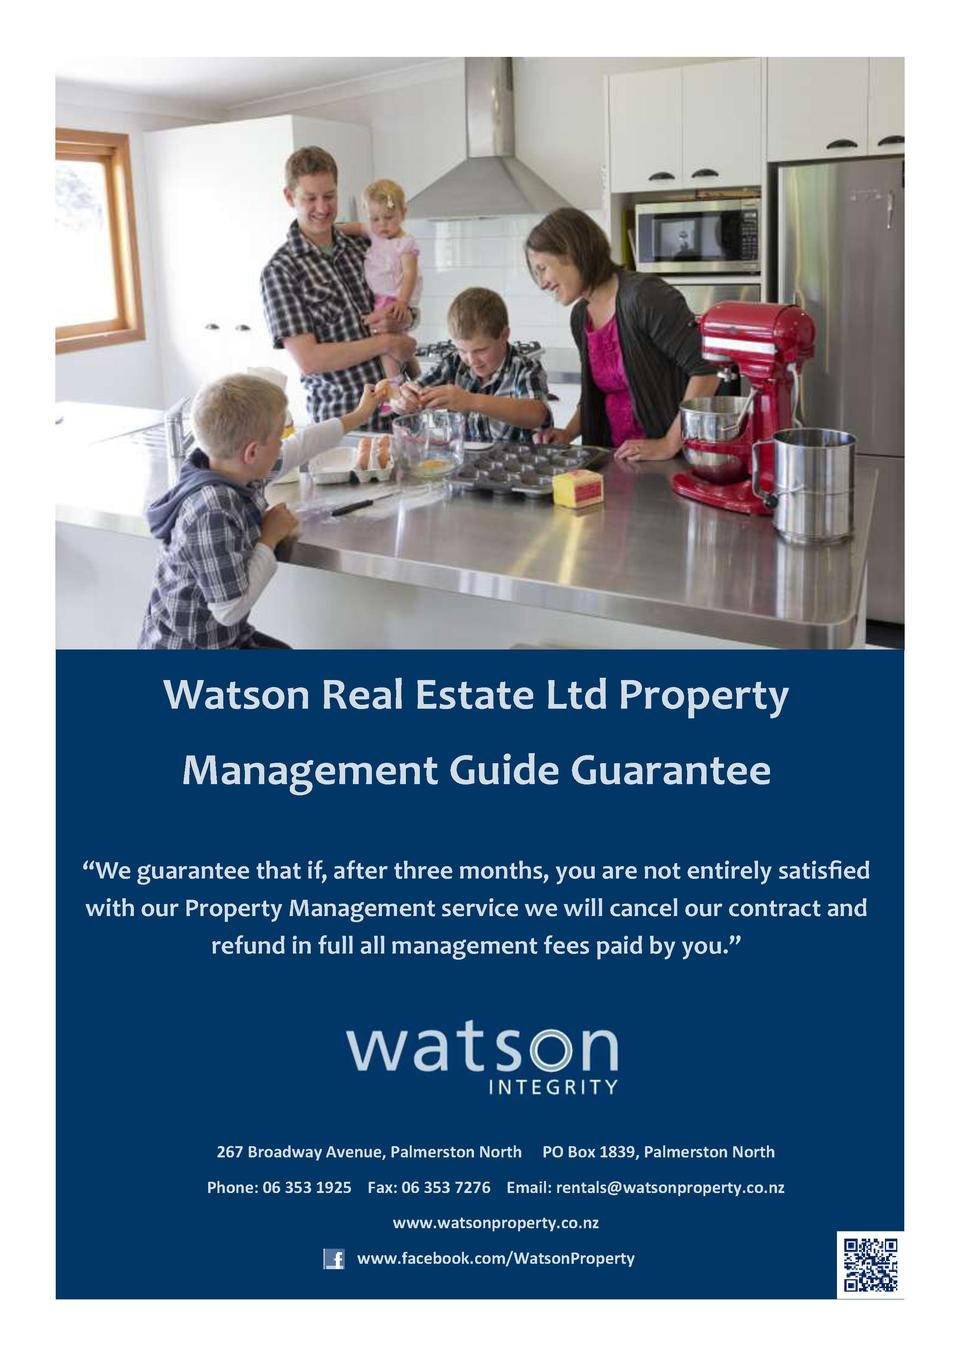 Watson Real Estate Ltd Property Management Guide Guarantee    We guarantee that if, after three months, you are not entire...